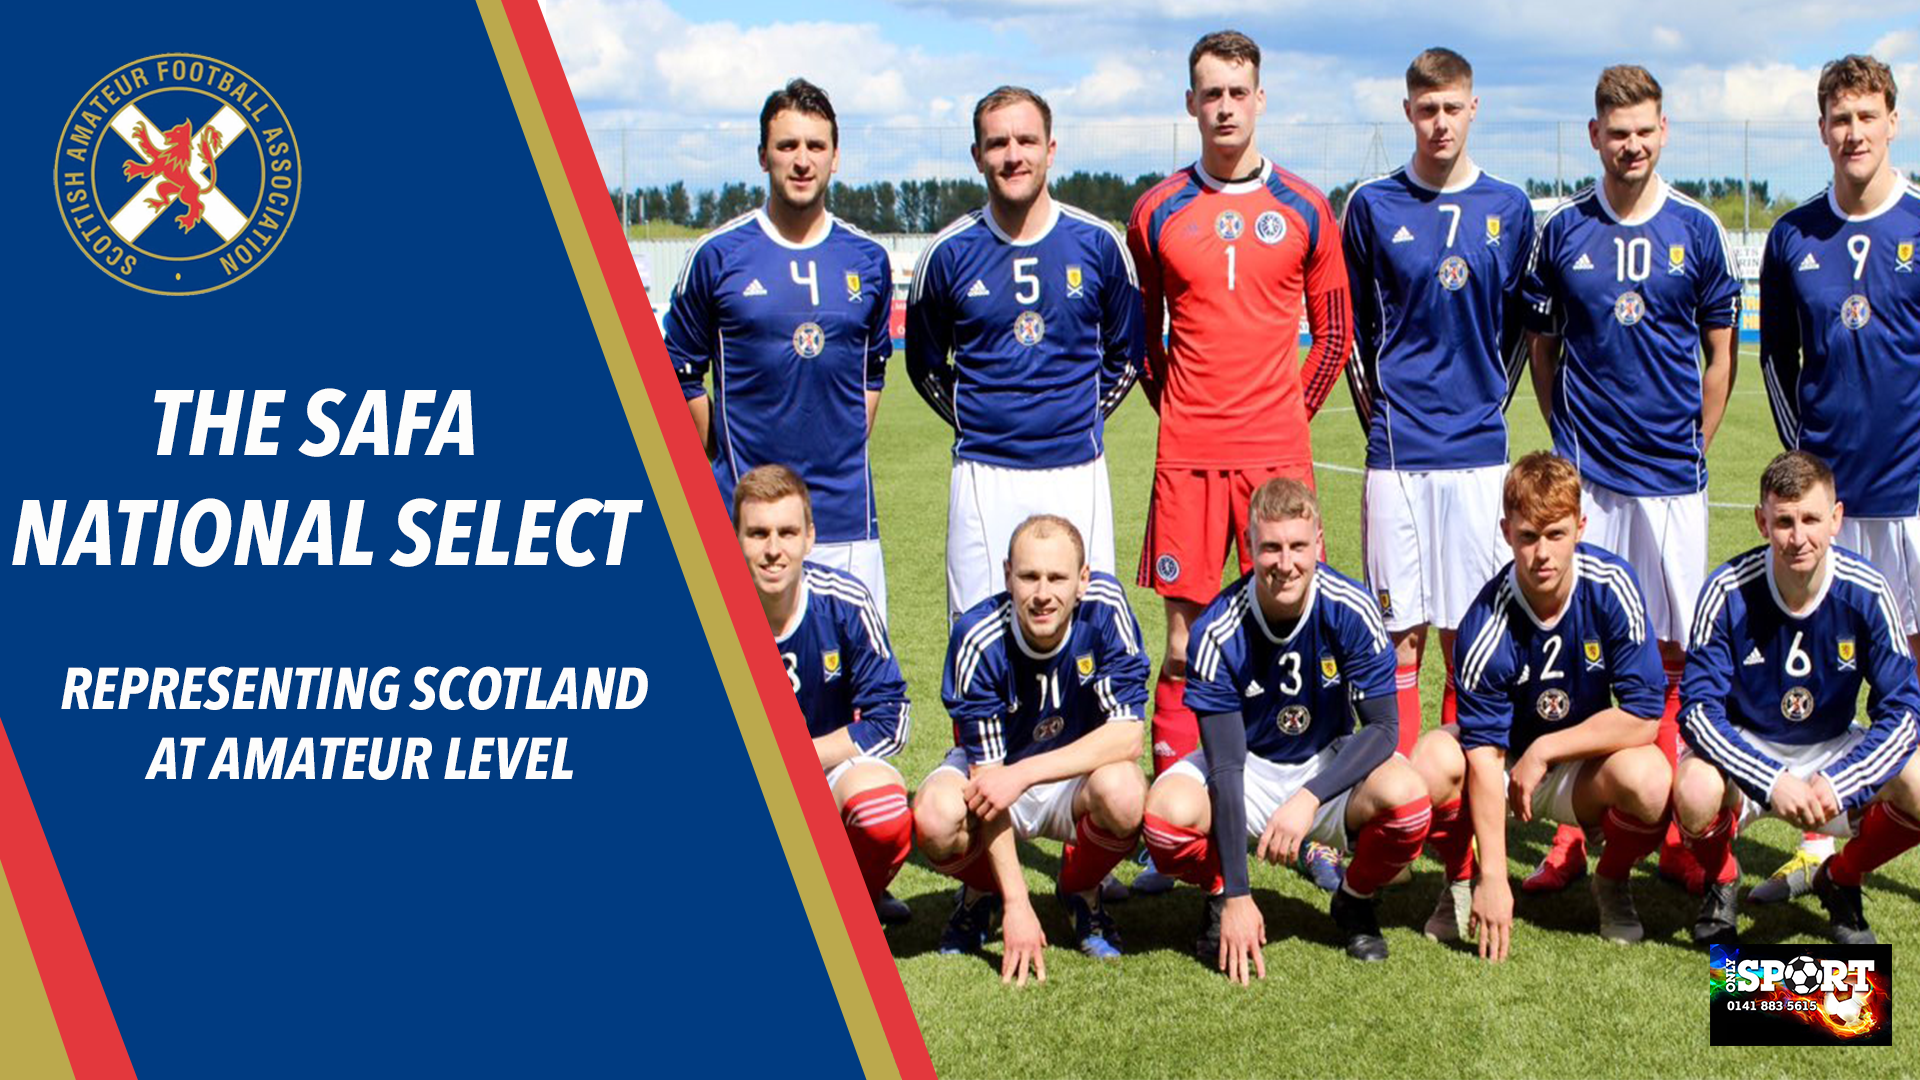 The SAFA National Select | Representing Scotland at Amateur Level